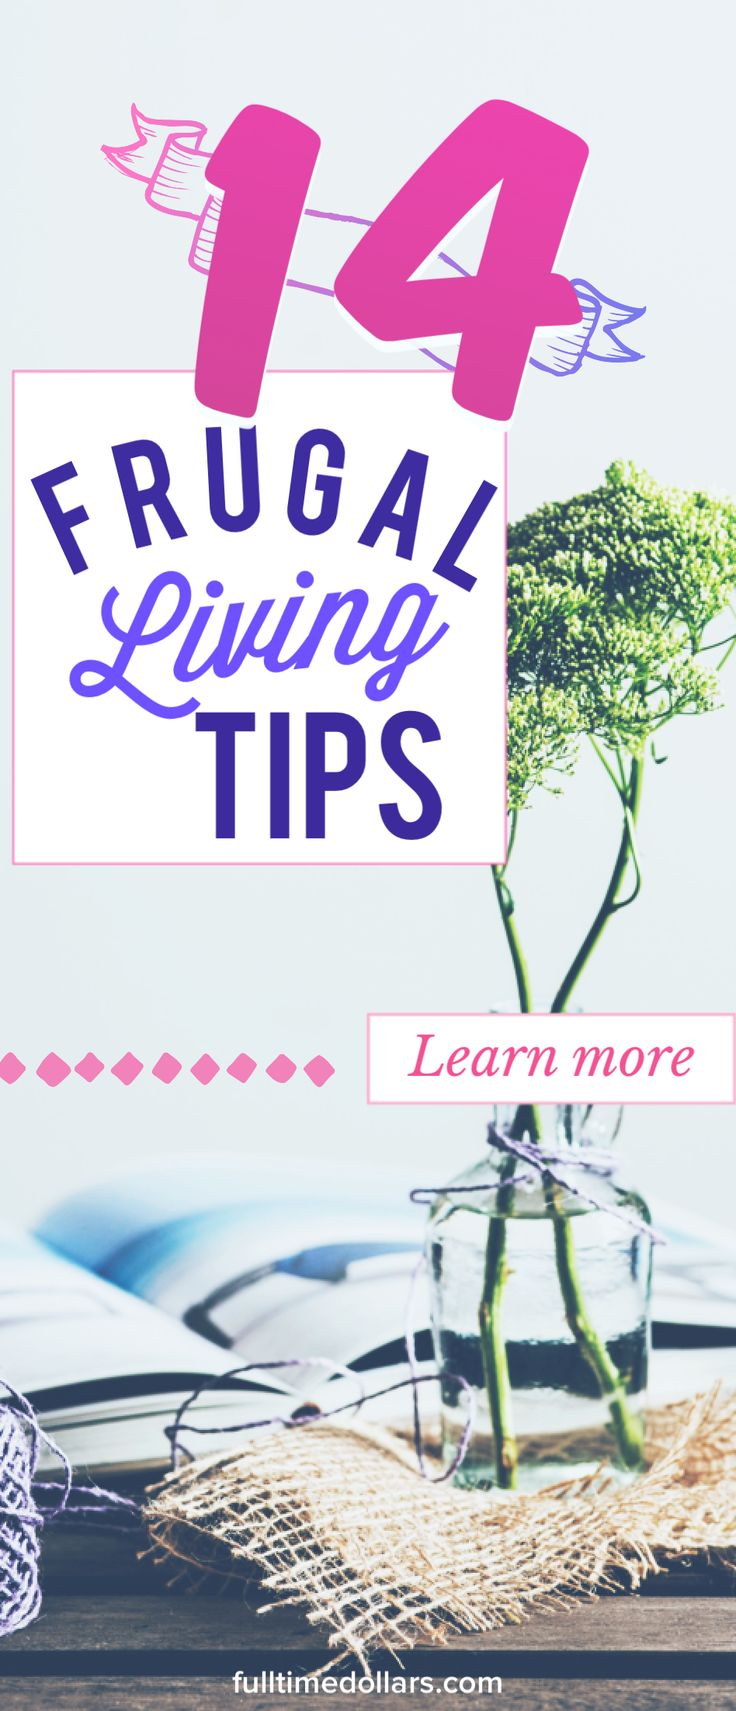 1643 best Frugal, DIY, & Self-Sufficient Ideas images on Pinterest ...